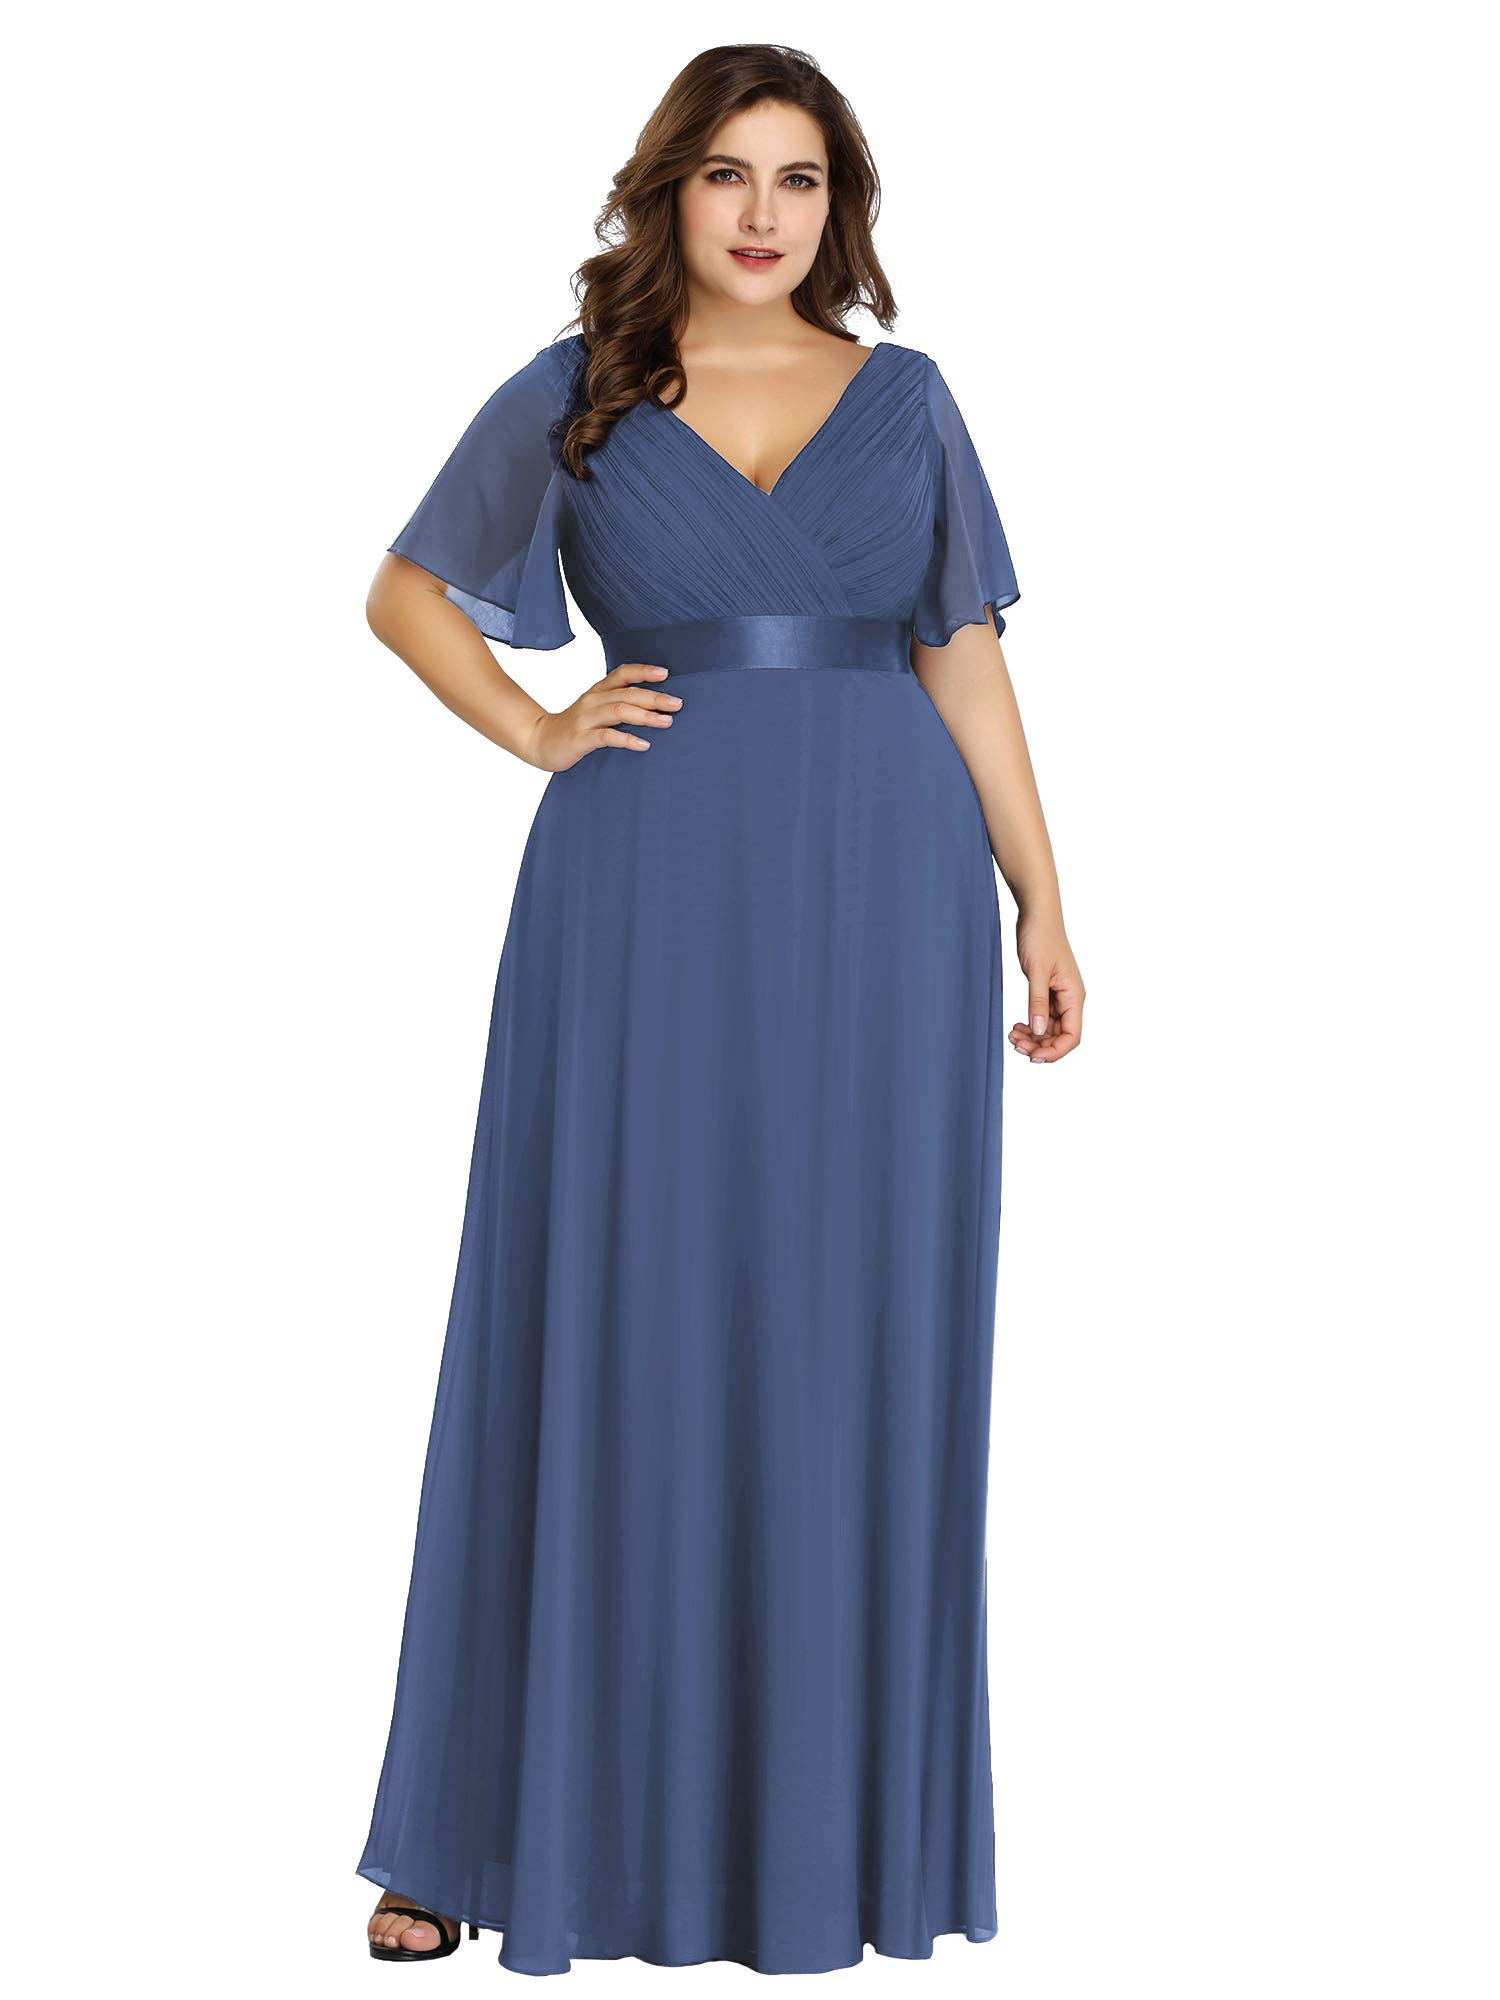 Alisapan Womens A-Line Bridesmaid Dress Plus Size Formal Evening Dresses  Dusty Blue US20